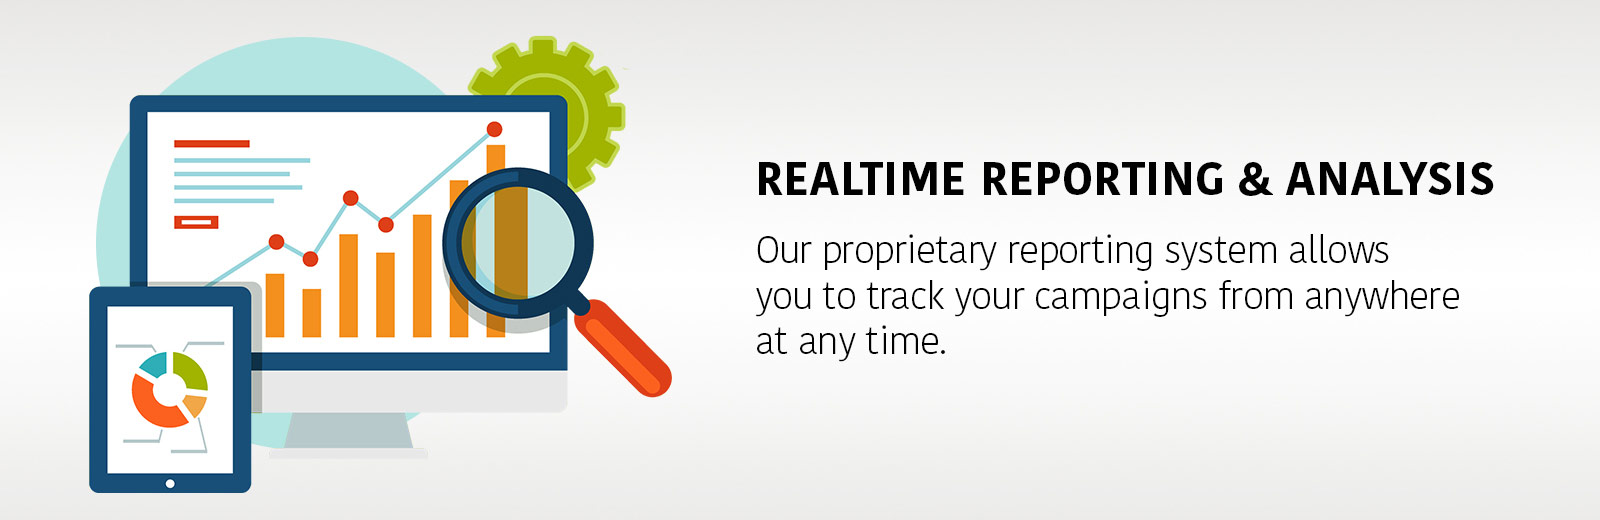 Realtime reporting & Analysis